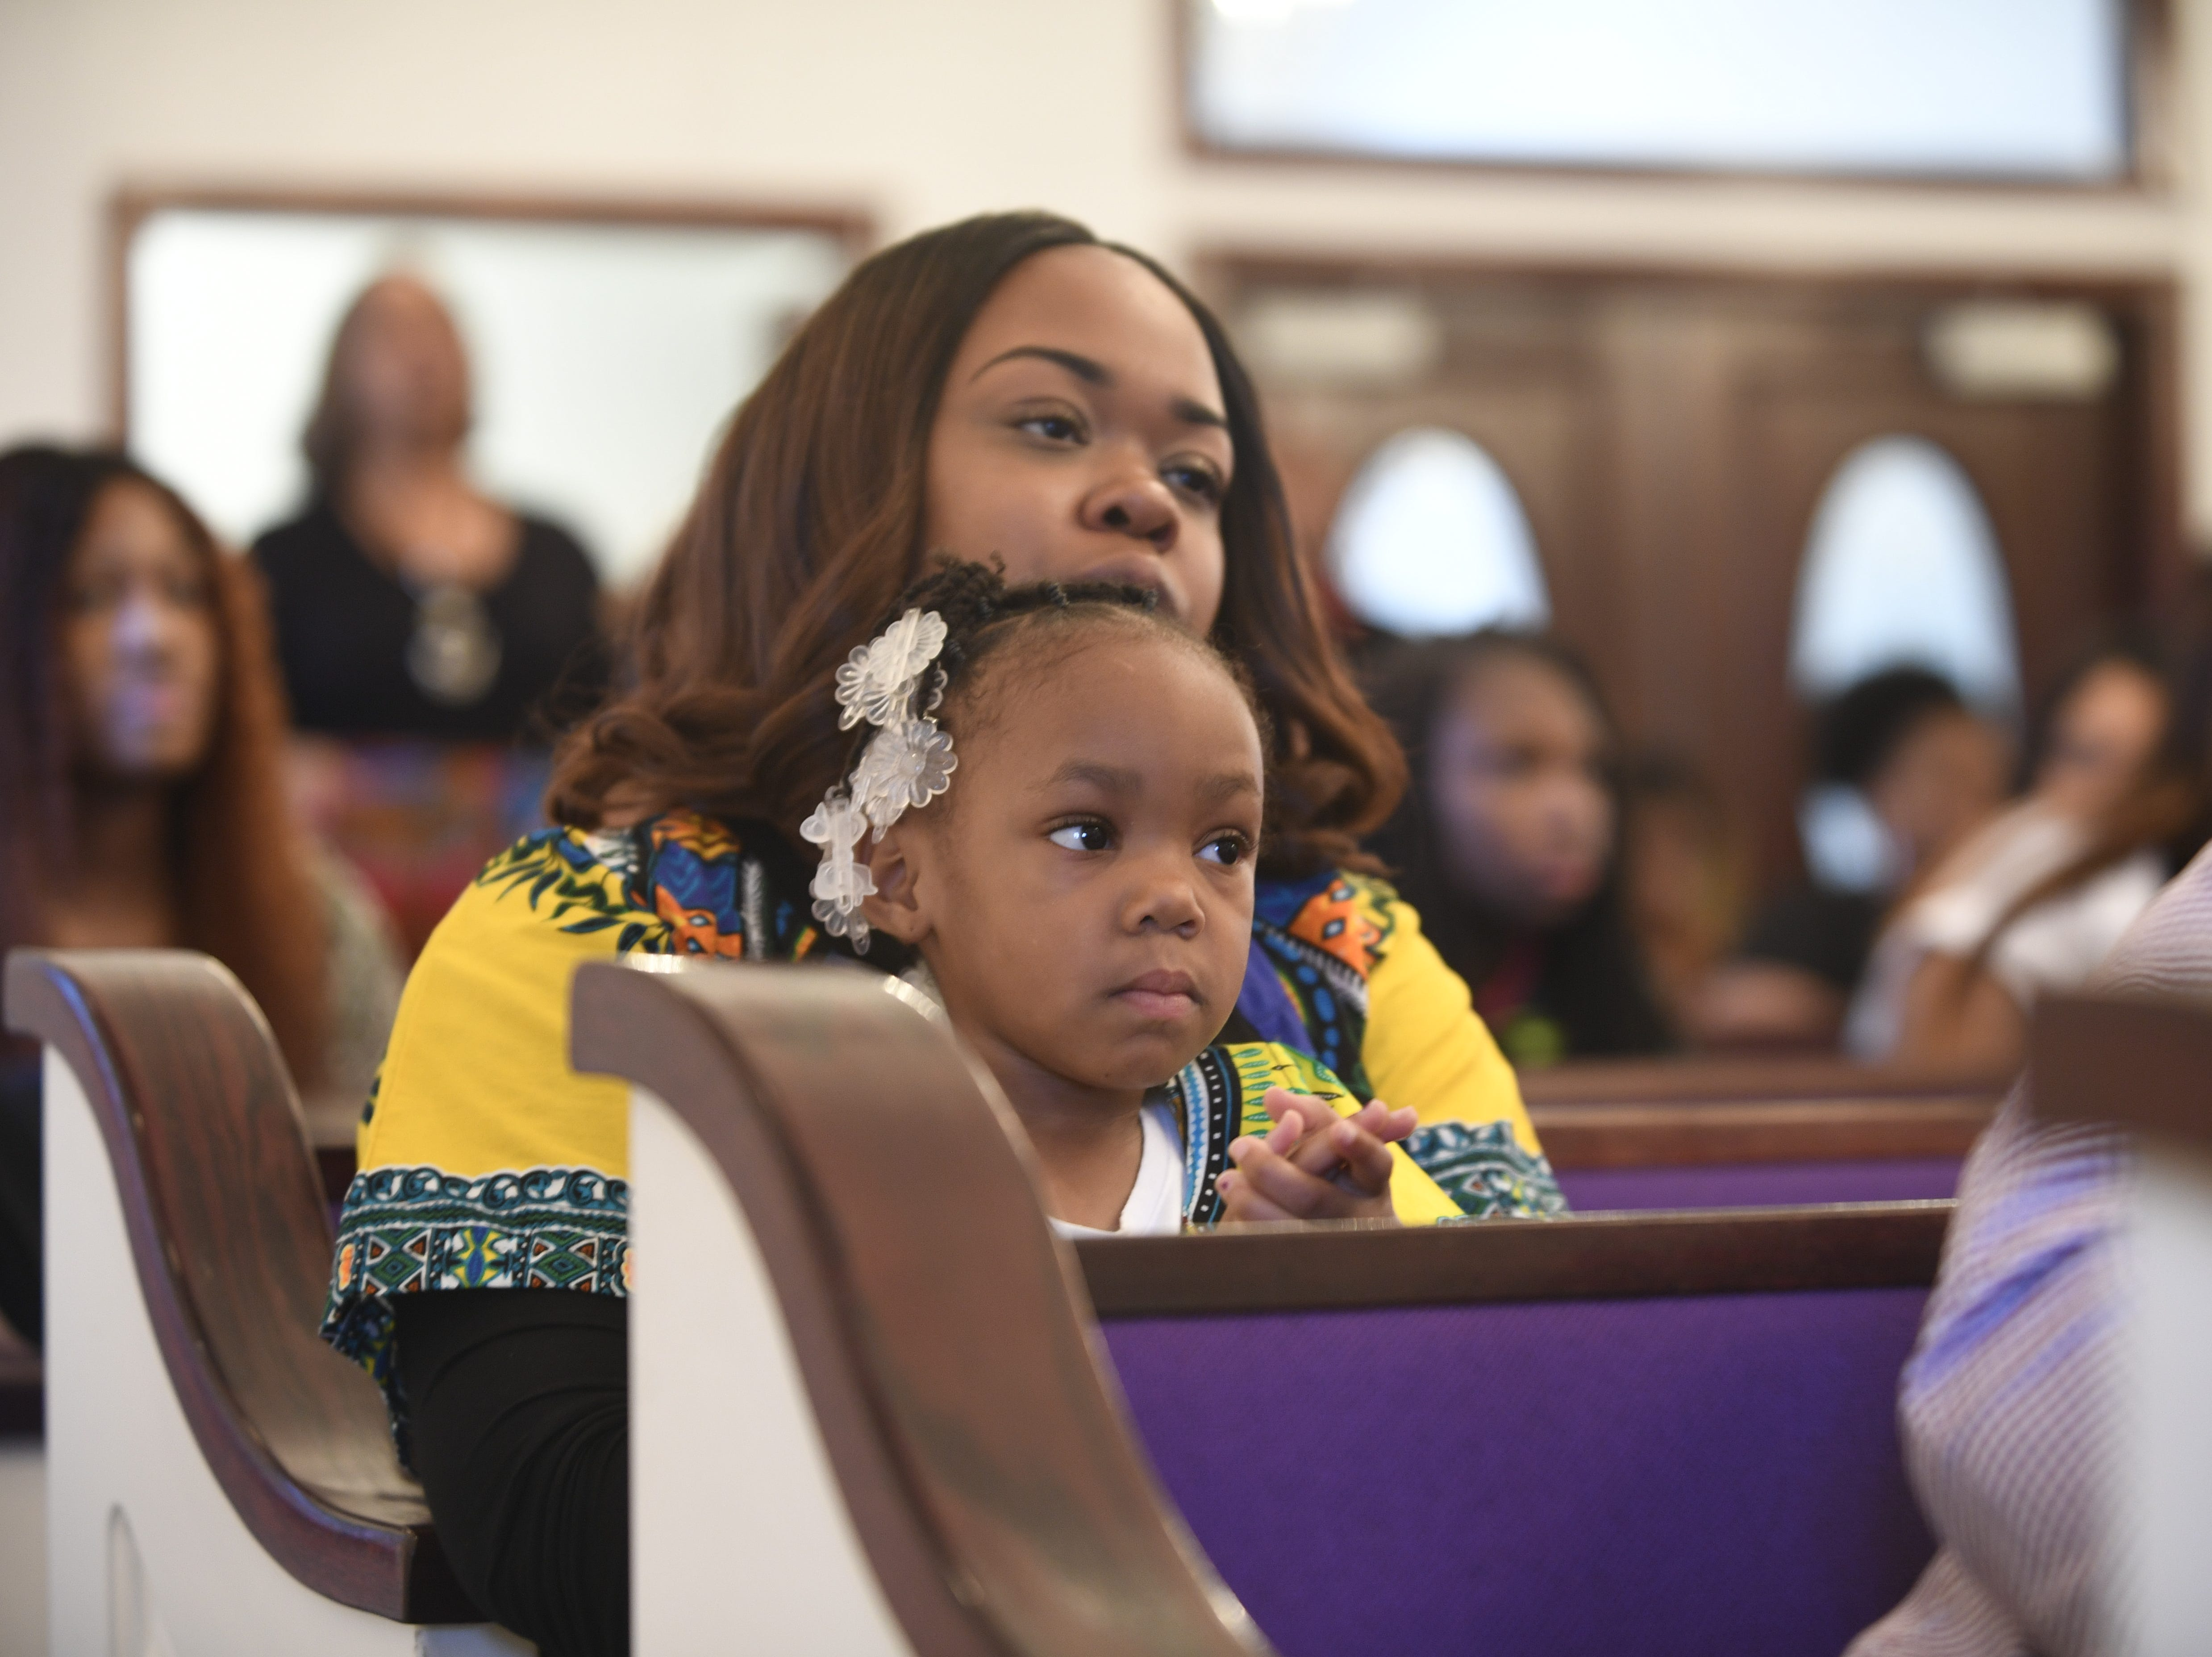 Chernae Anderson and her daughter Ava listen to the speakers during Mt. Pleasant Church's Black History Month event, in Pinson, Tenn. Feb 24, 2019.